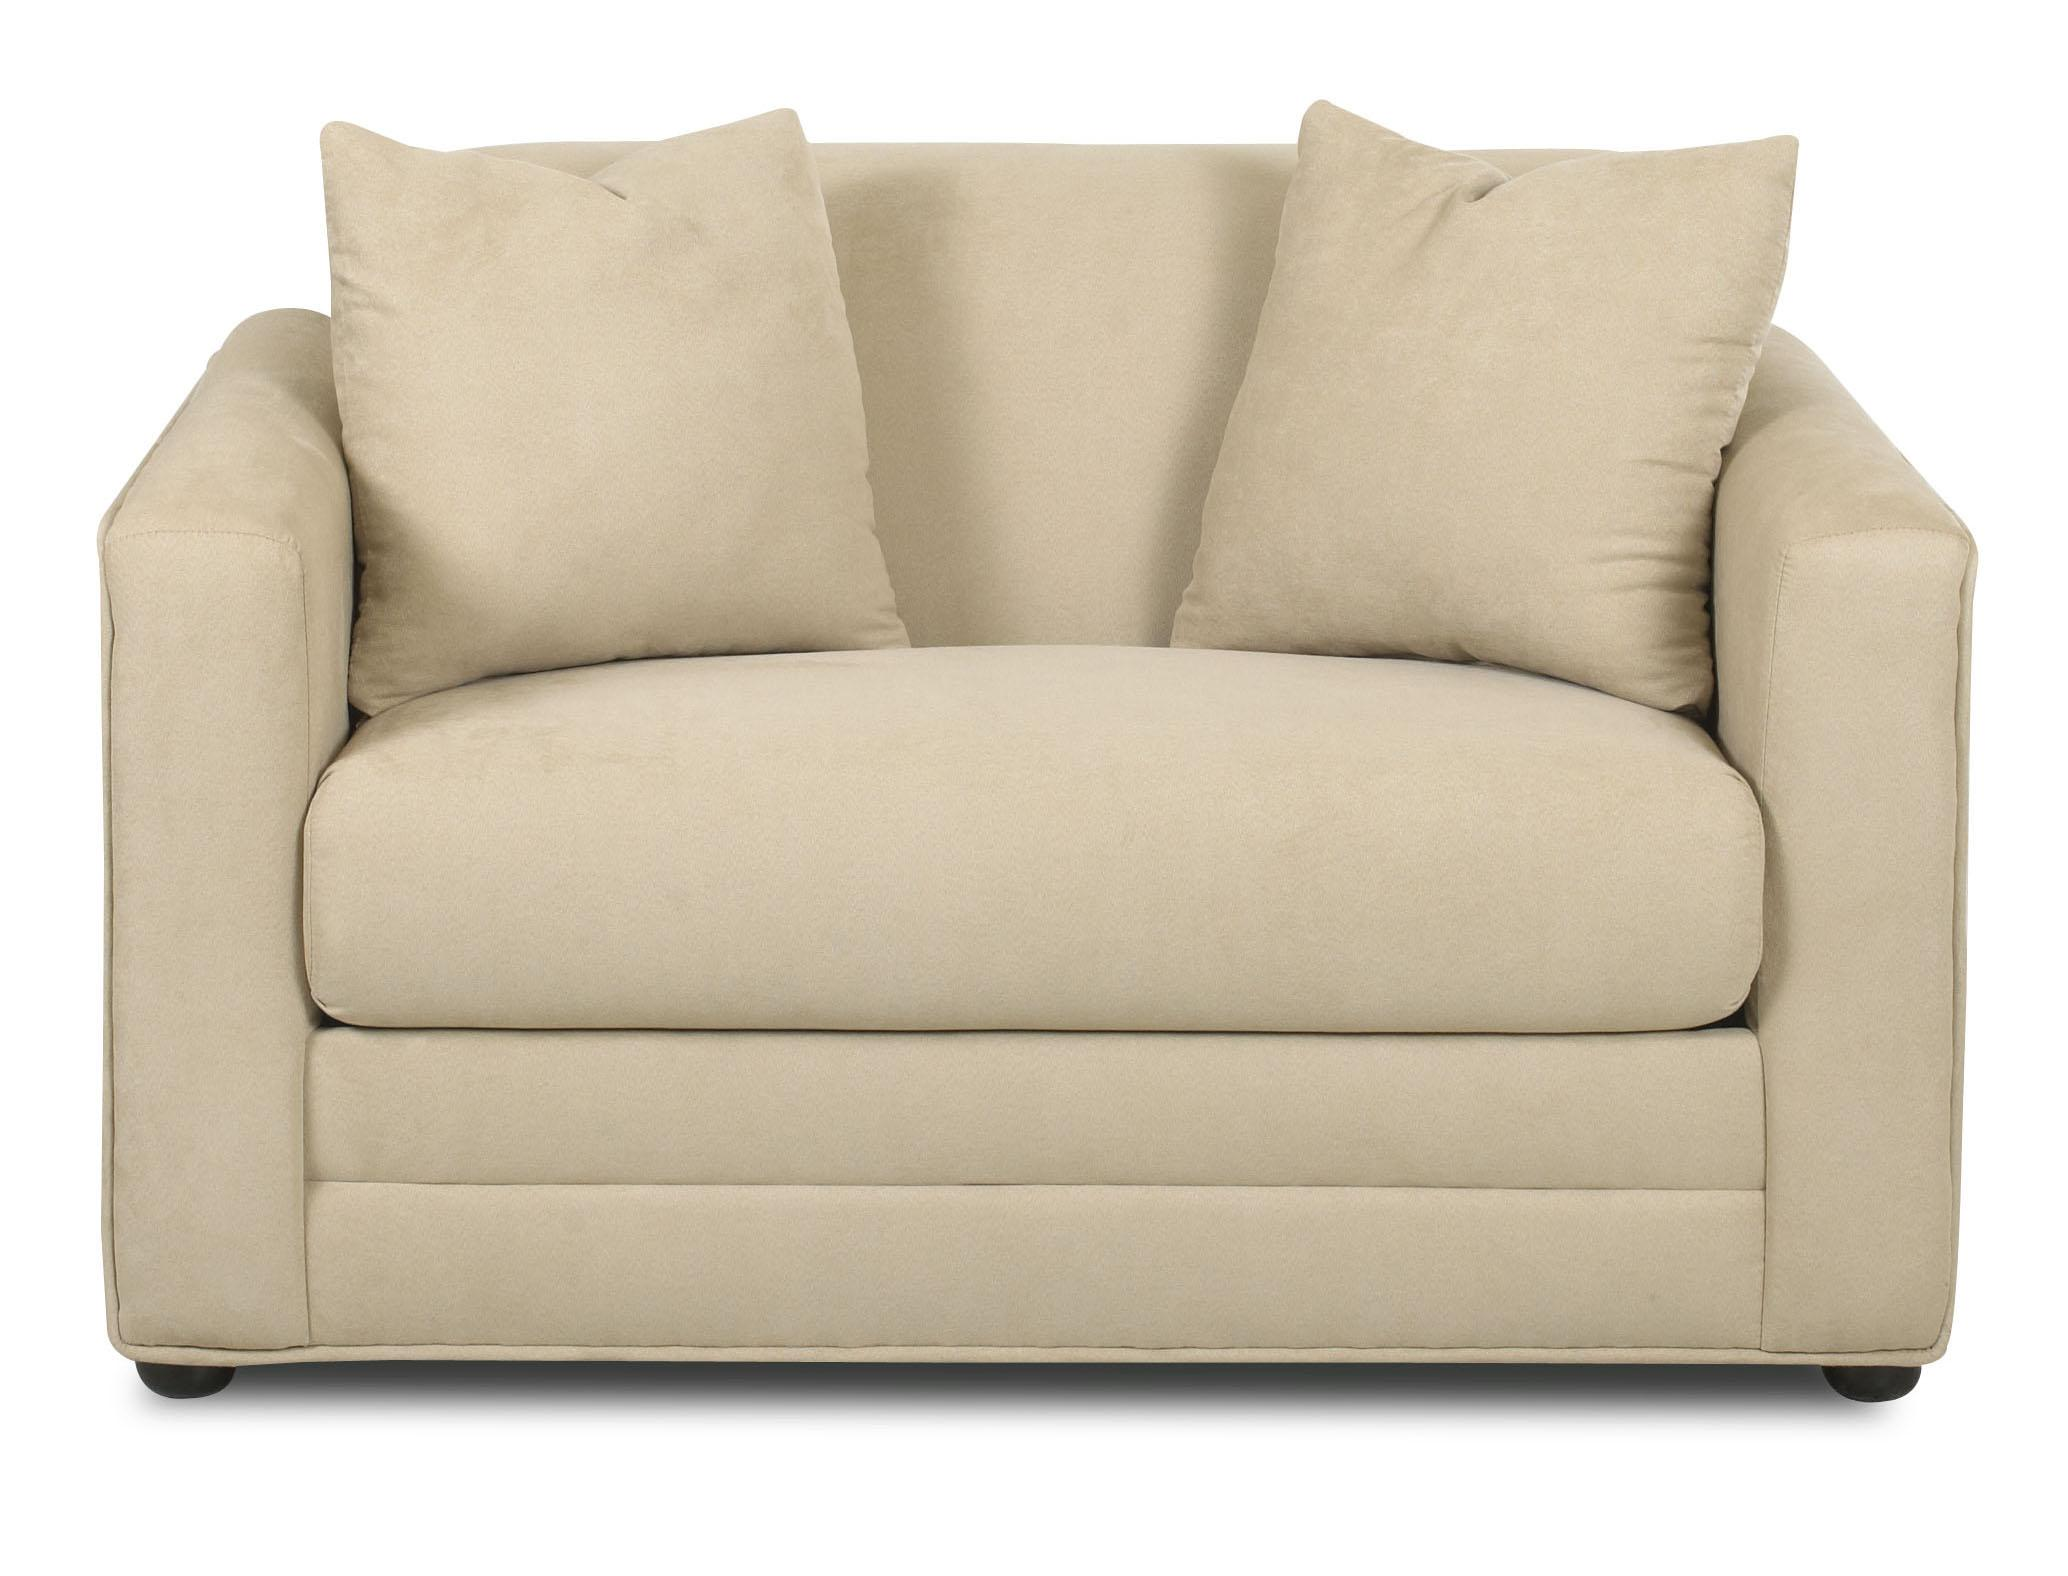 Oversized Sofa Chair Take Advantage Of Oversized Couch Bed Read These 10 Tips